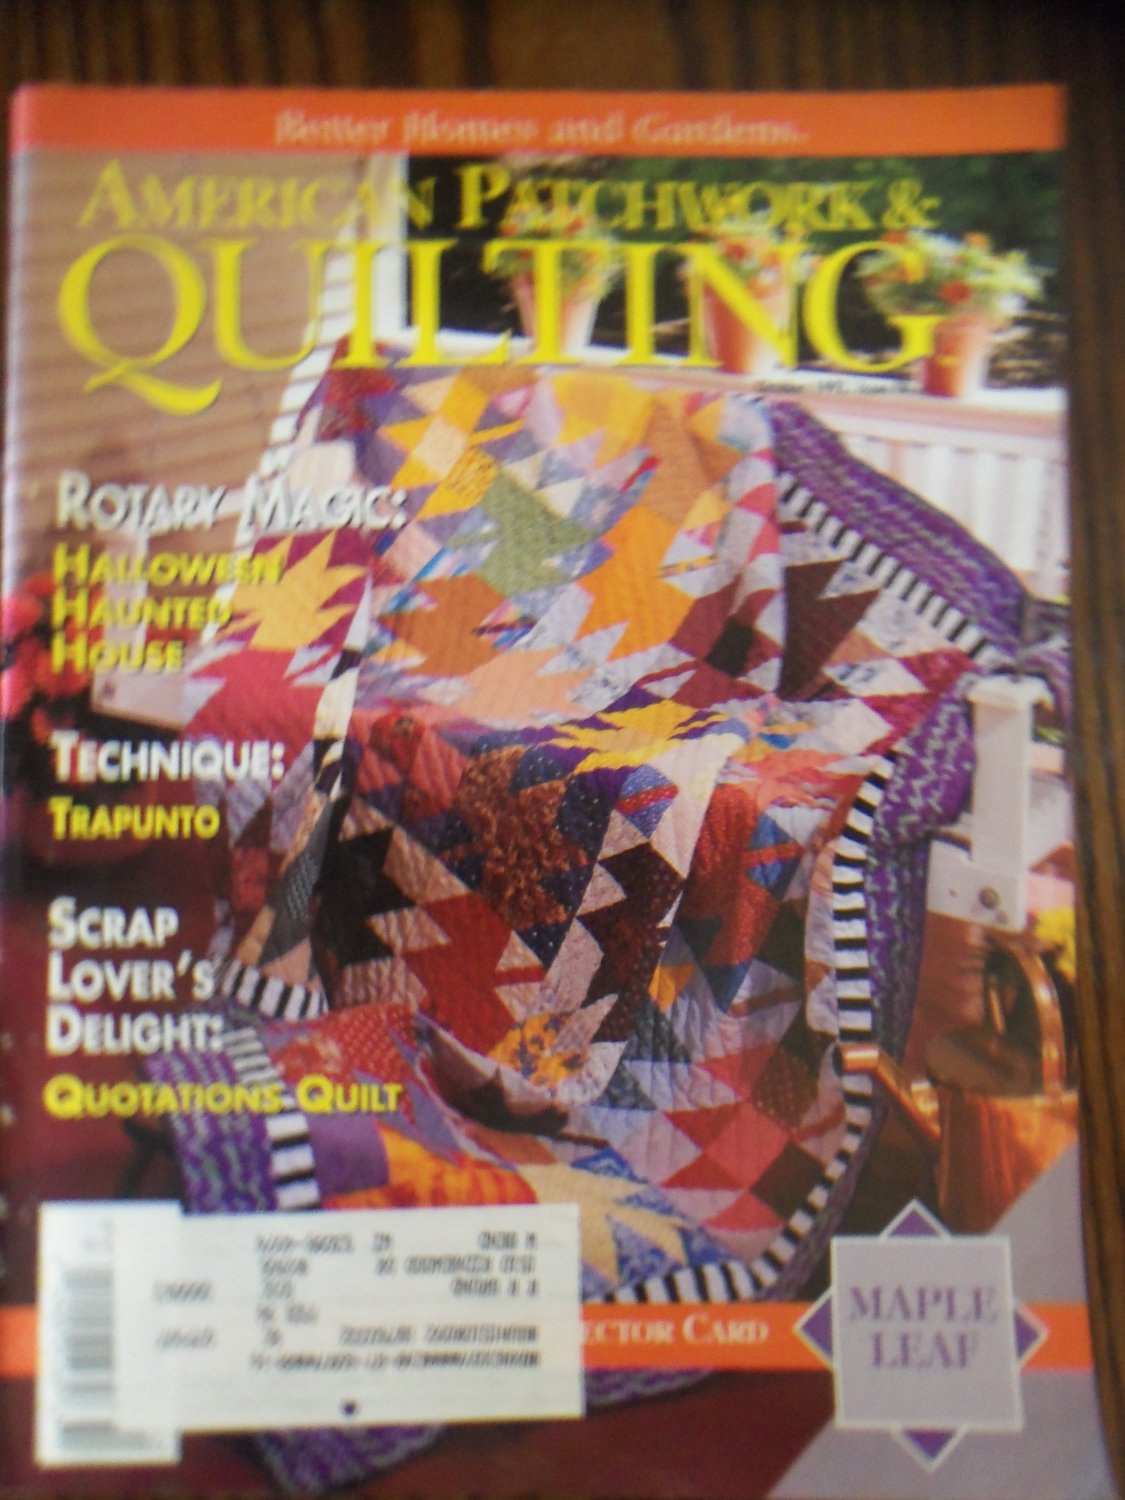 American Patchwork Quilting October 1993 Issue 4 Back